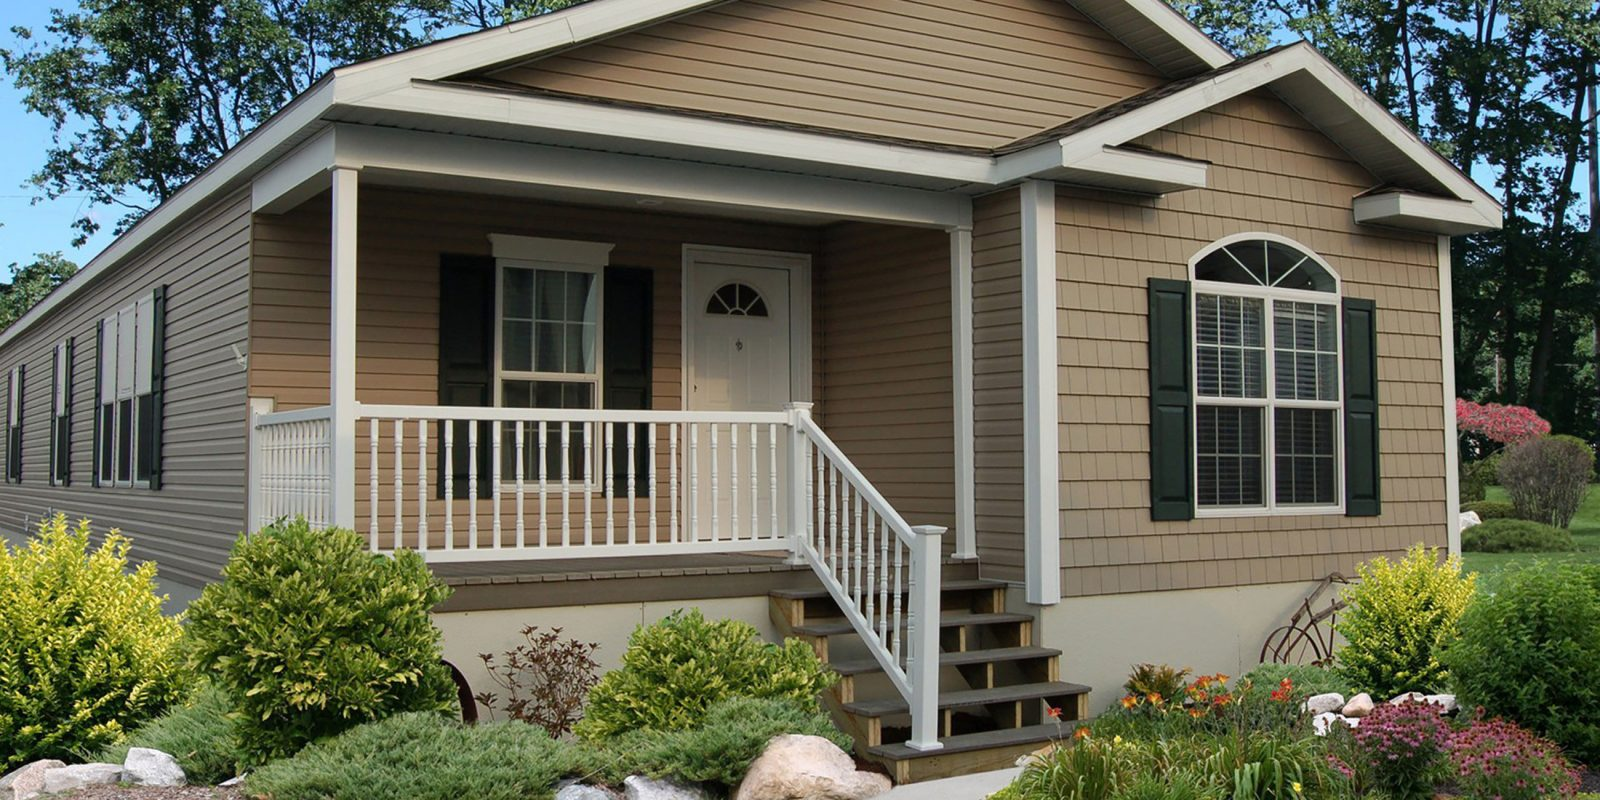 New Manufactured Homes For Sale - Hereford Homes Hereford Homes on used mobile homes sale, mobile homes on sale, single wide mobile homes sale, new mobile homes sale, manufactured home designs,